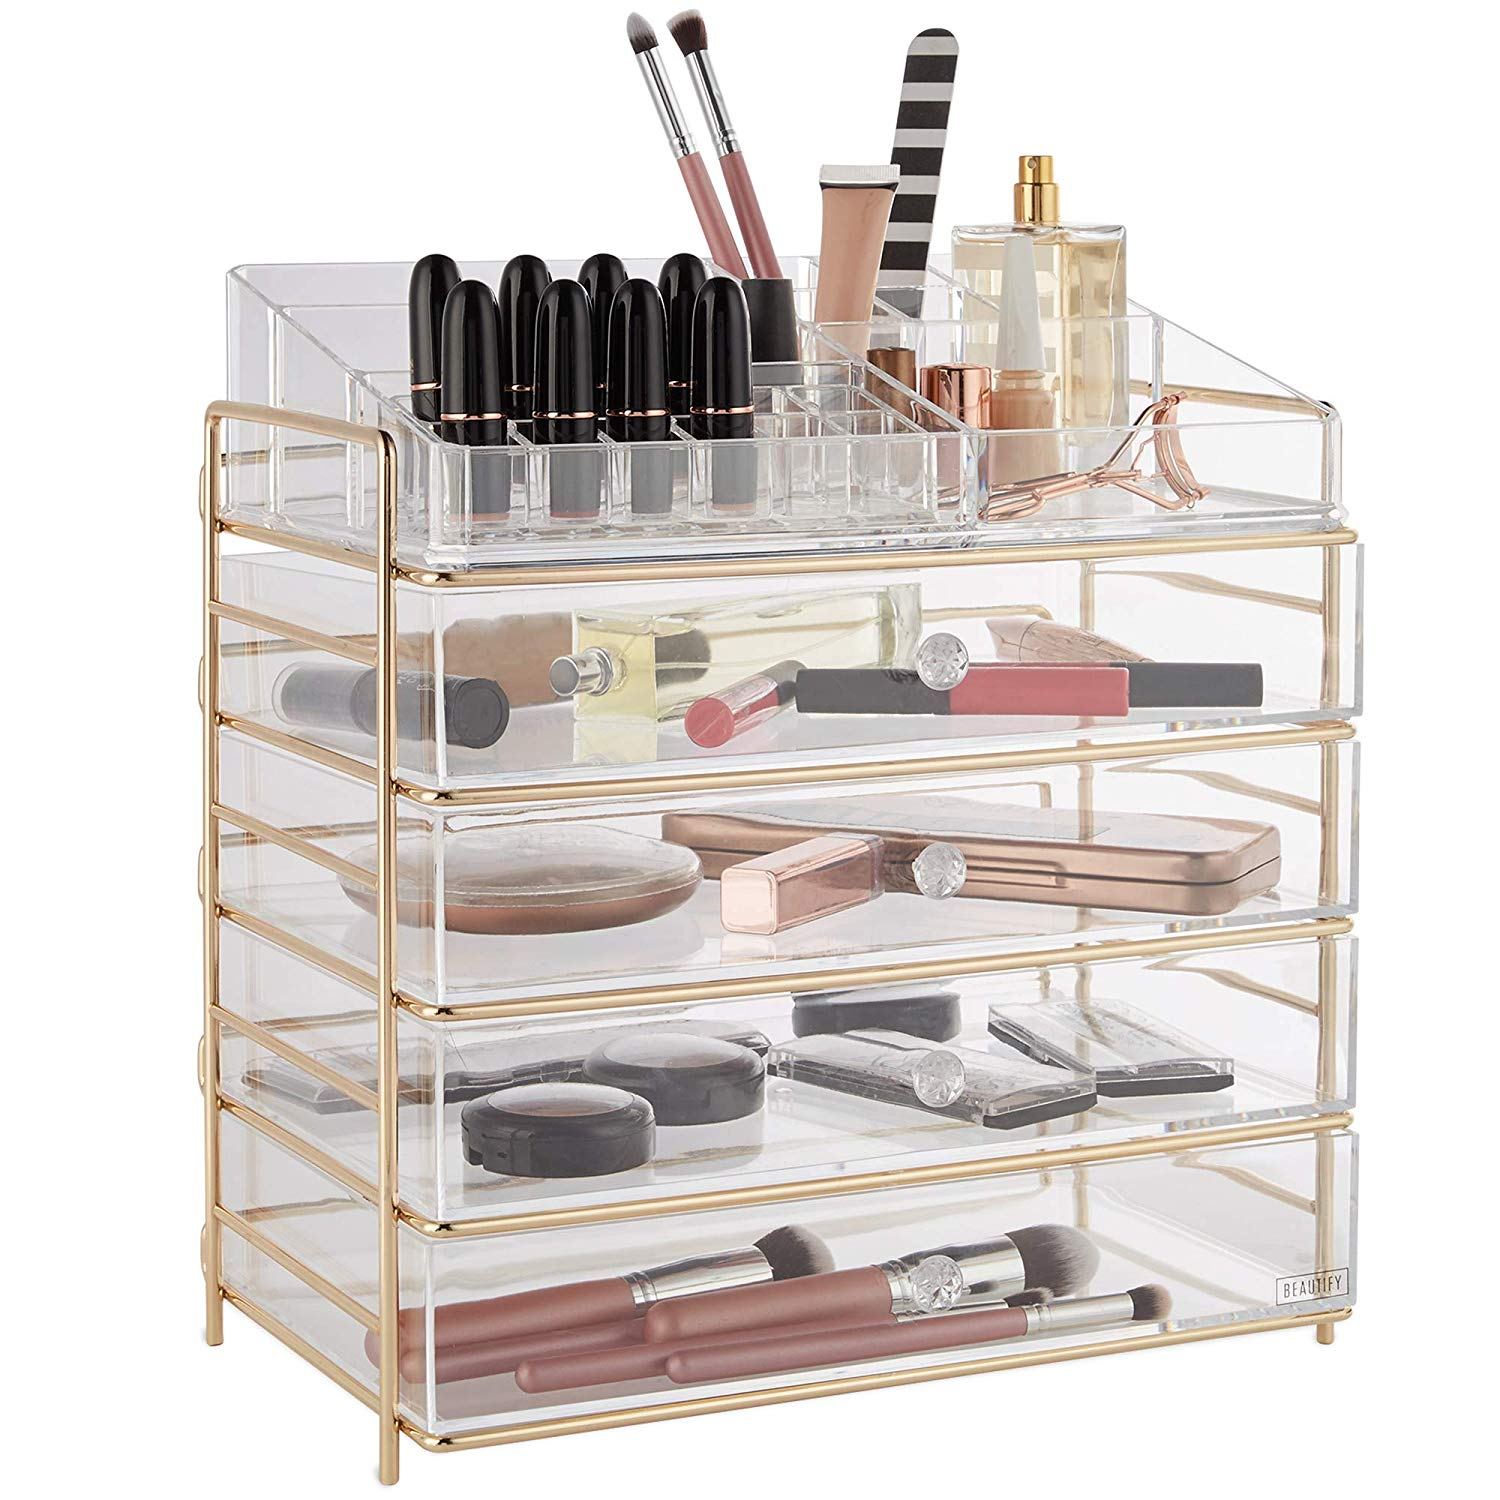 Weekly Finds - Beautify Large 5 Tier Clear Acrylic Cosmetic Makeup Storage Cube Organizer with Champagne Gold Frame